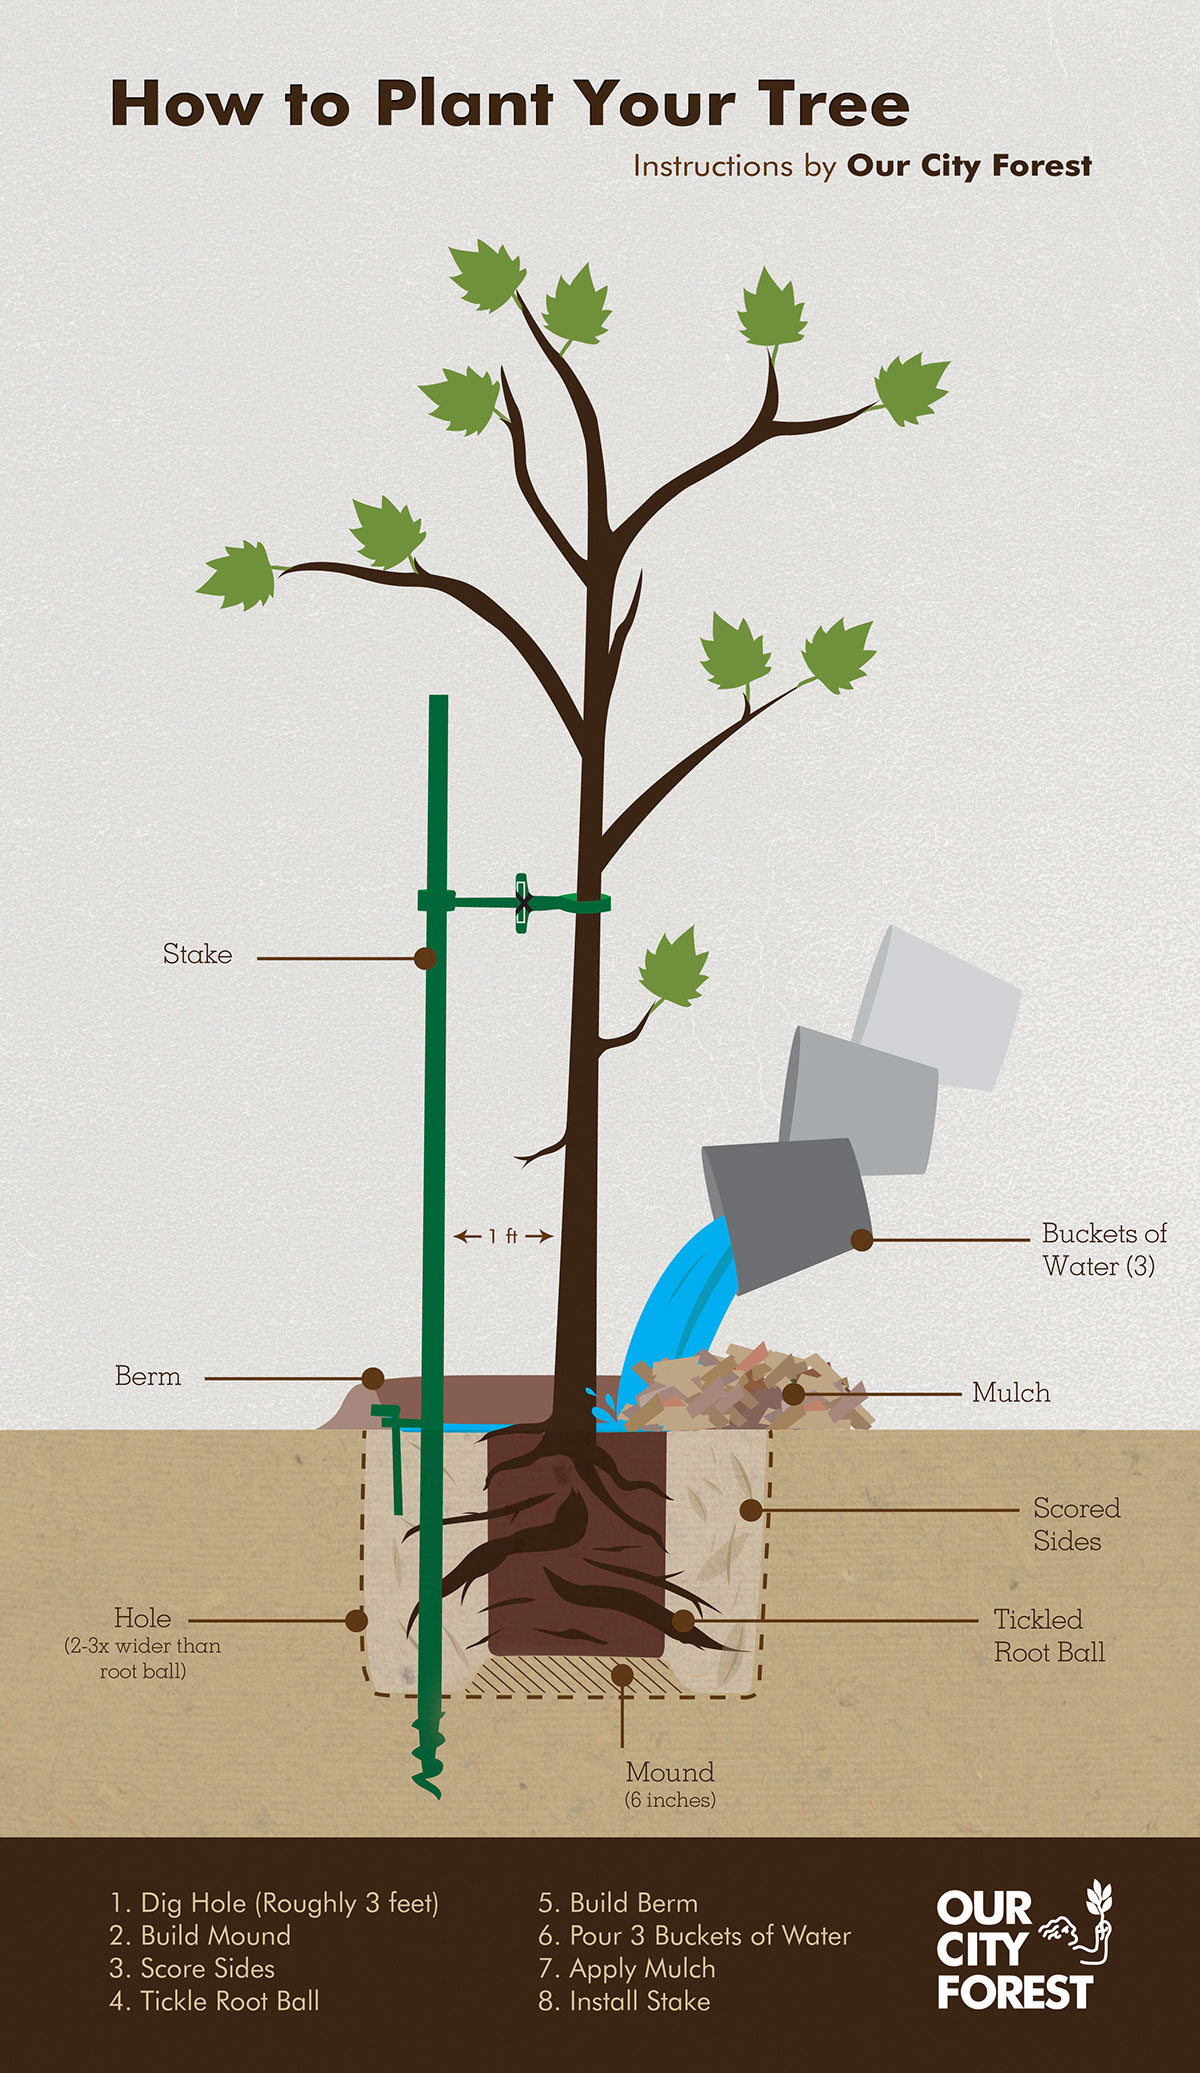 How to plant your tree infographic on behance - Fir tree planting instructions a vigorous garden ...